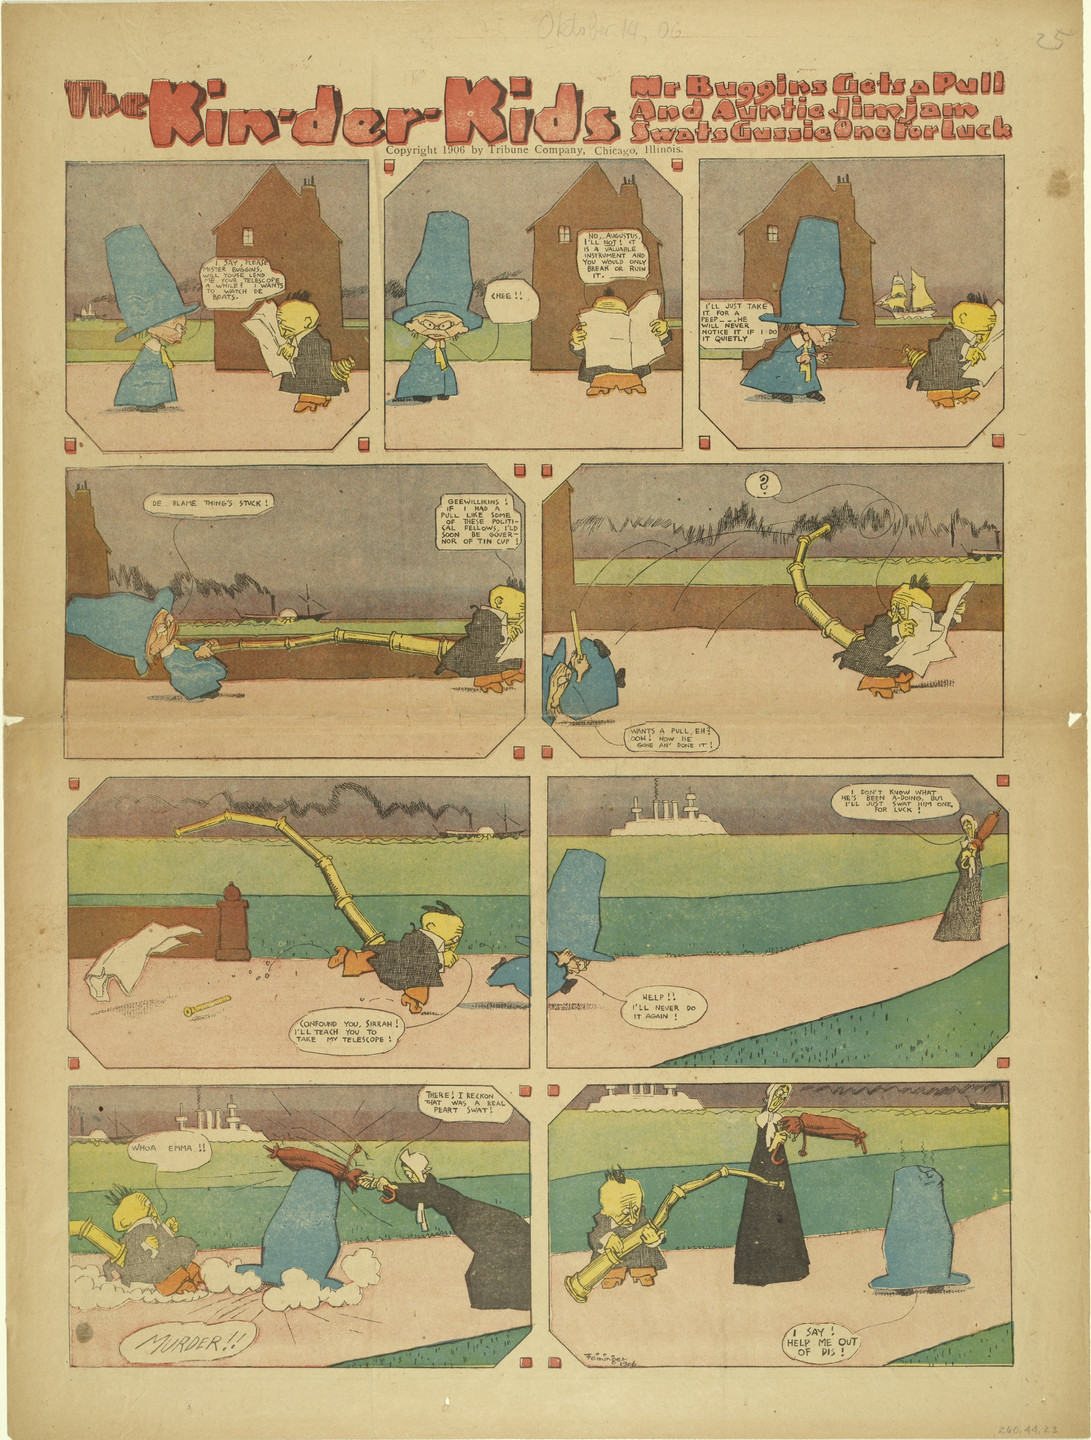 Lyonel Feininger. The Kin-der-Kids: Mr. Buggins Gets a Pull and Auntie Jimjam Swats Gussie One for Luck from The Chicago Sunday Tribune. (October 14) 1906